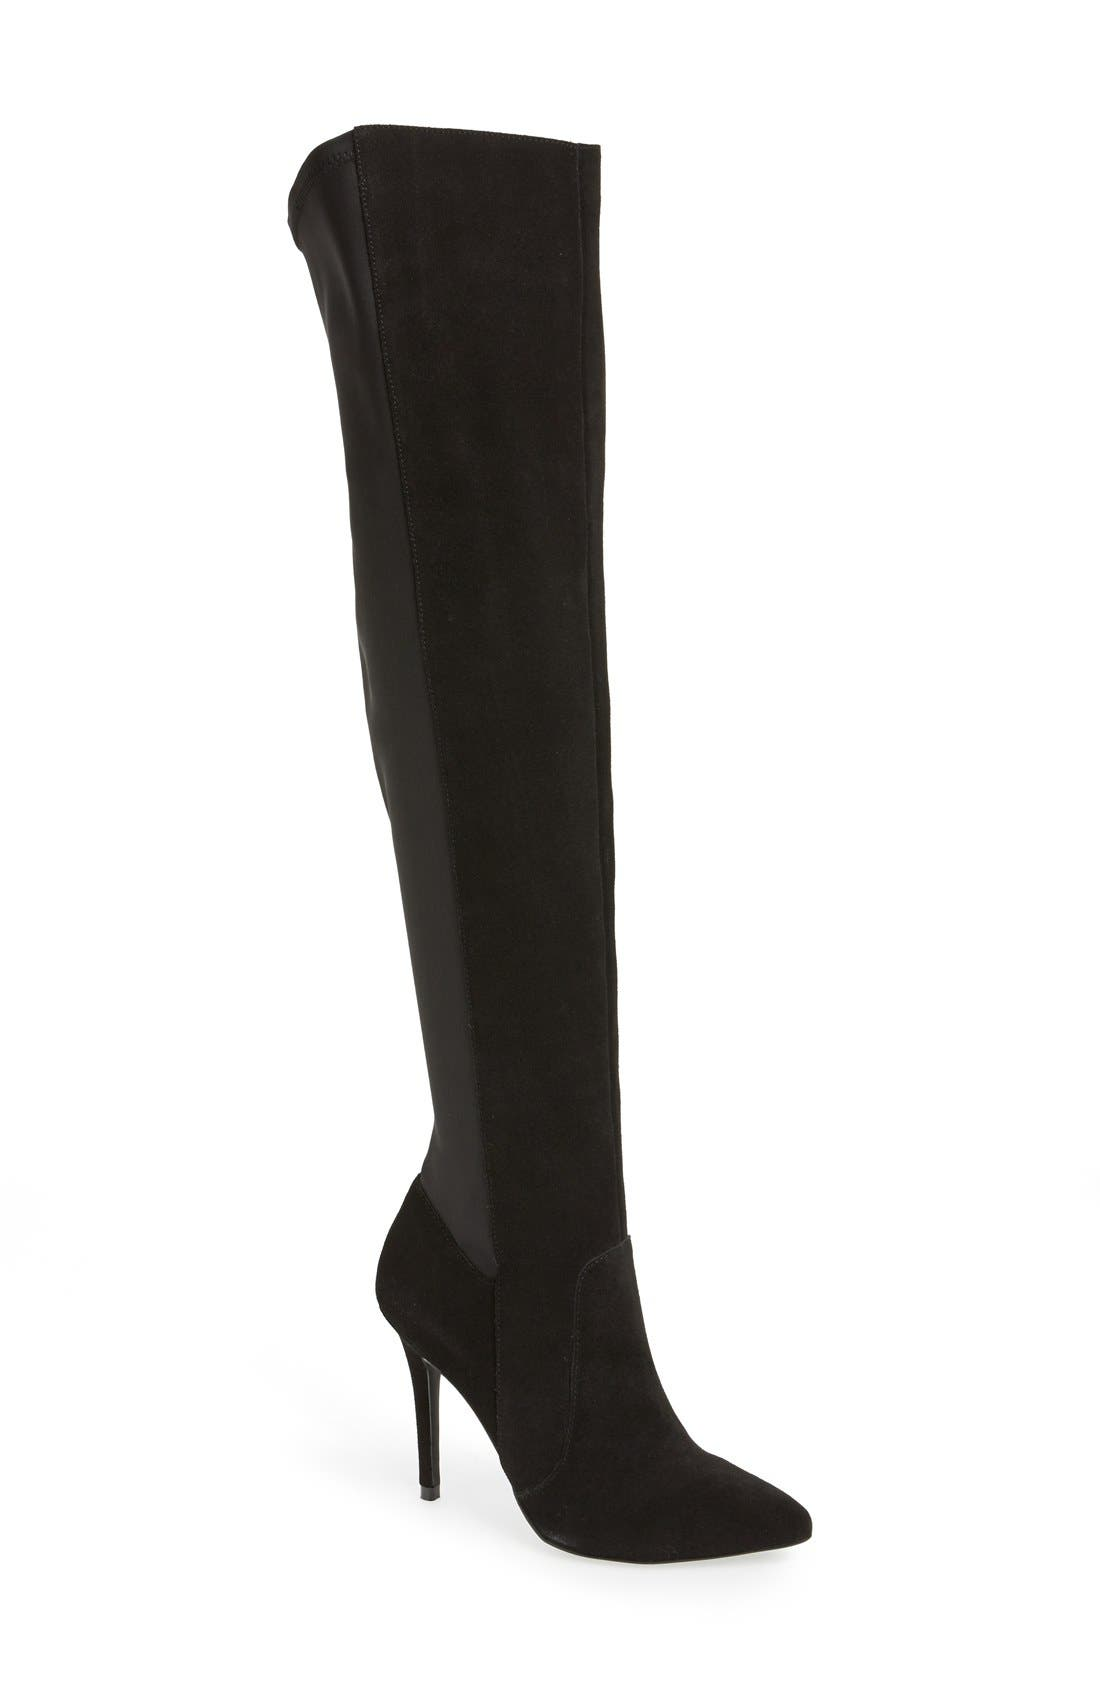 CHARLES BY CHARLES DAVID, 'Paso' Over The Knee Boot, Main thumbnail 1, color, 002